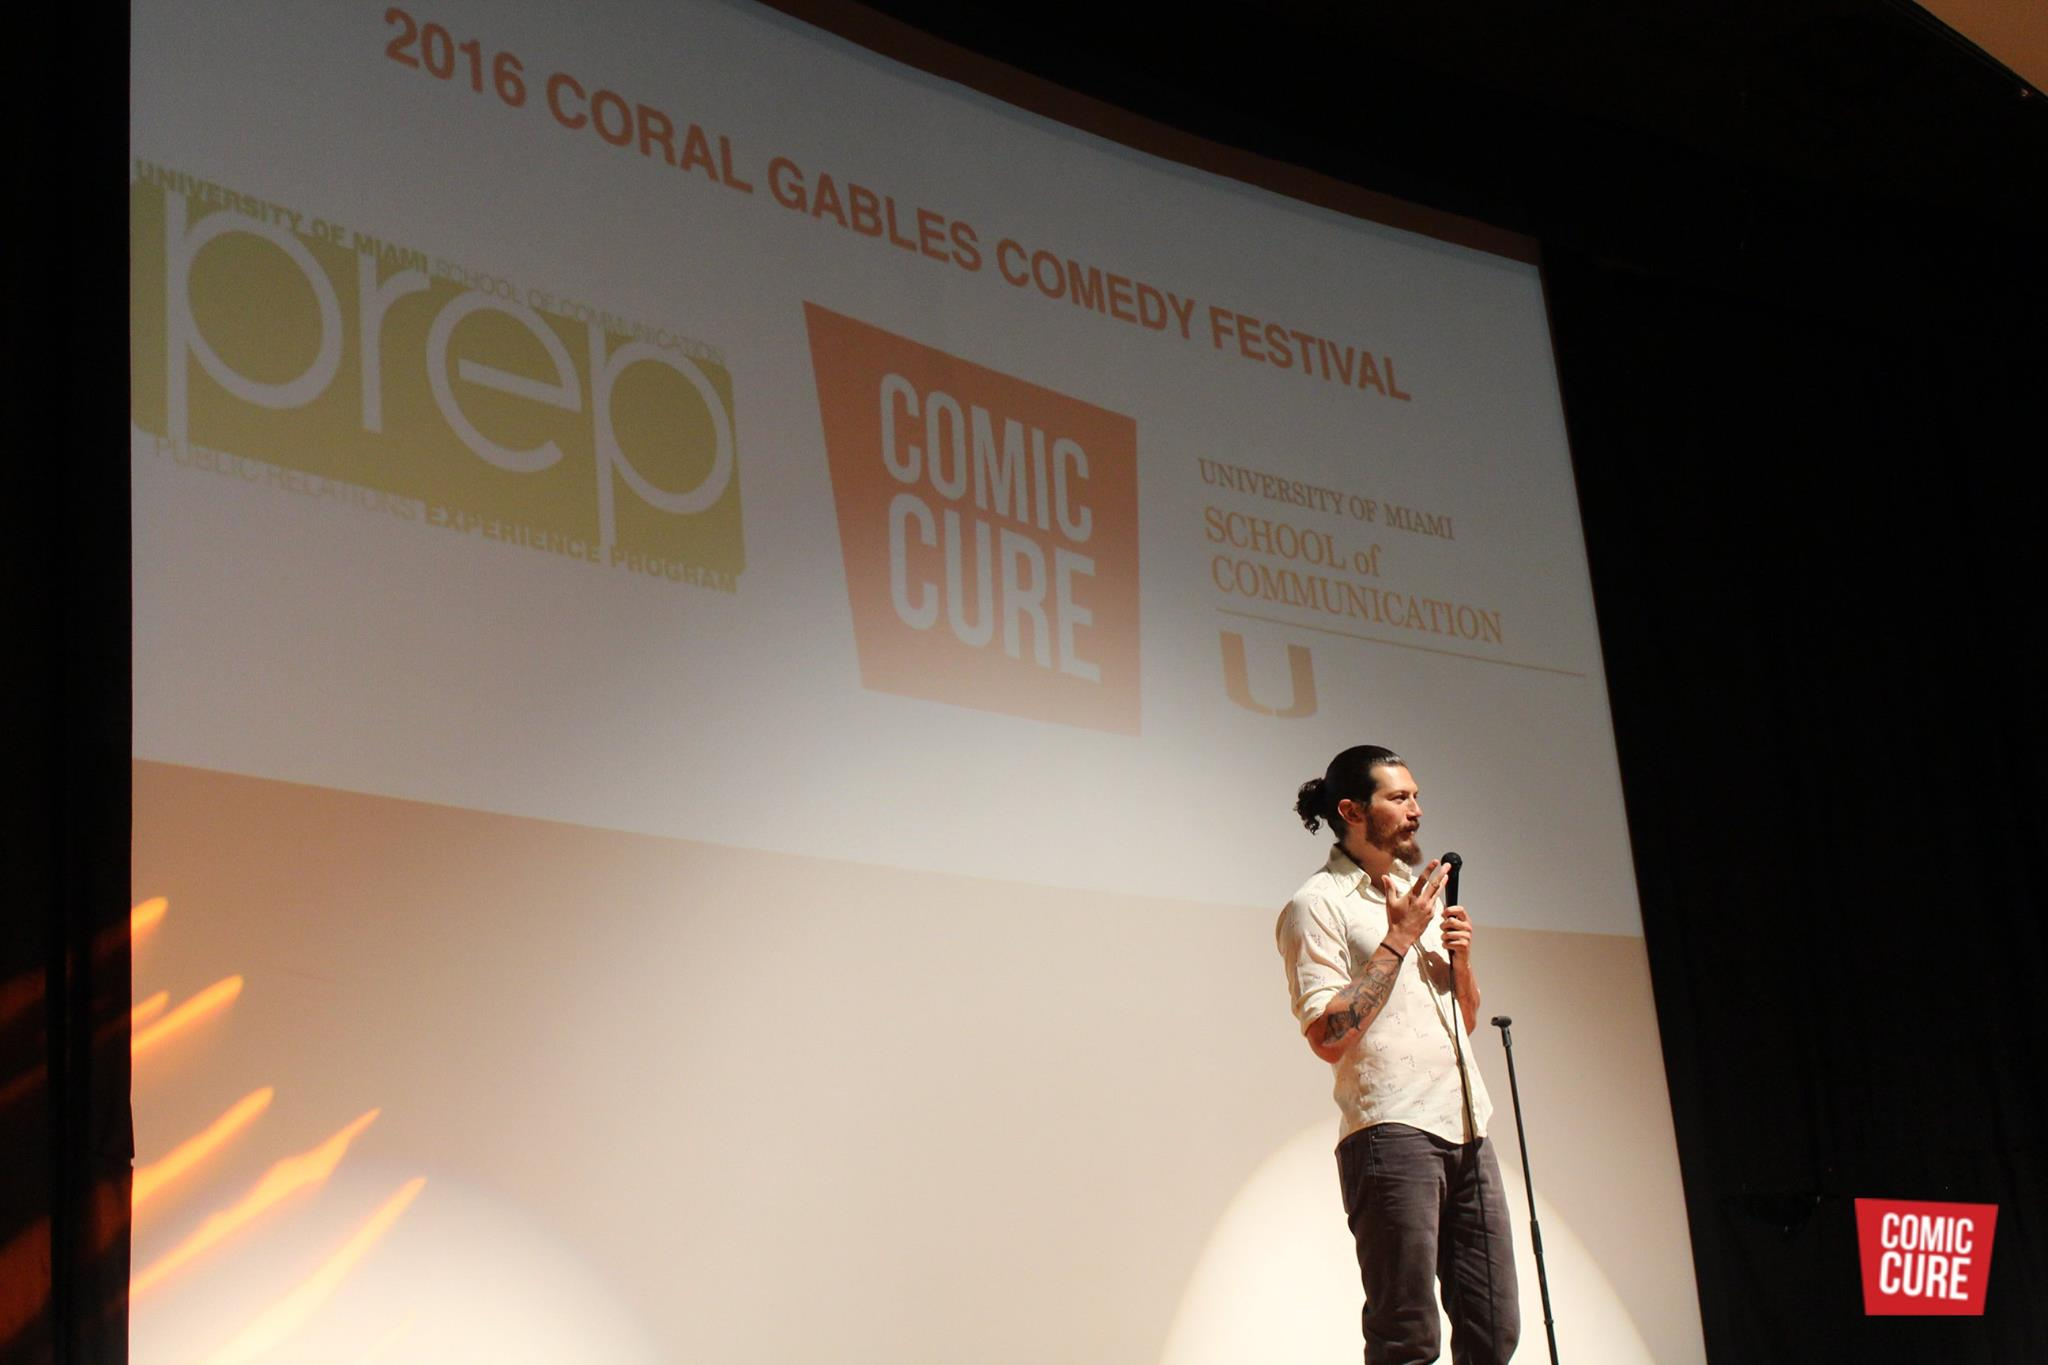 Danny Benavente Performing in the Coral Gables Comedy Festival at the University of Miami